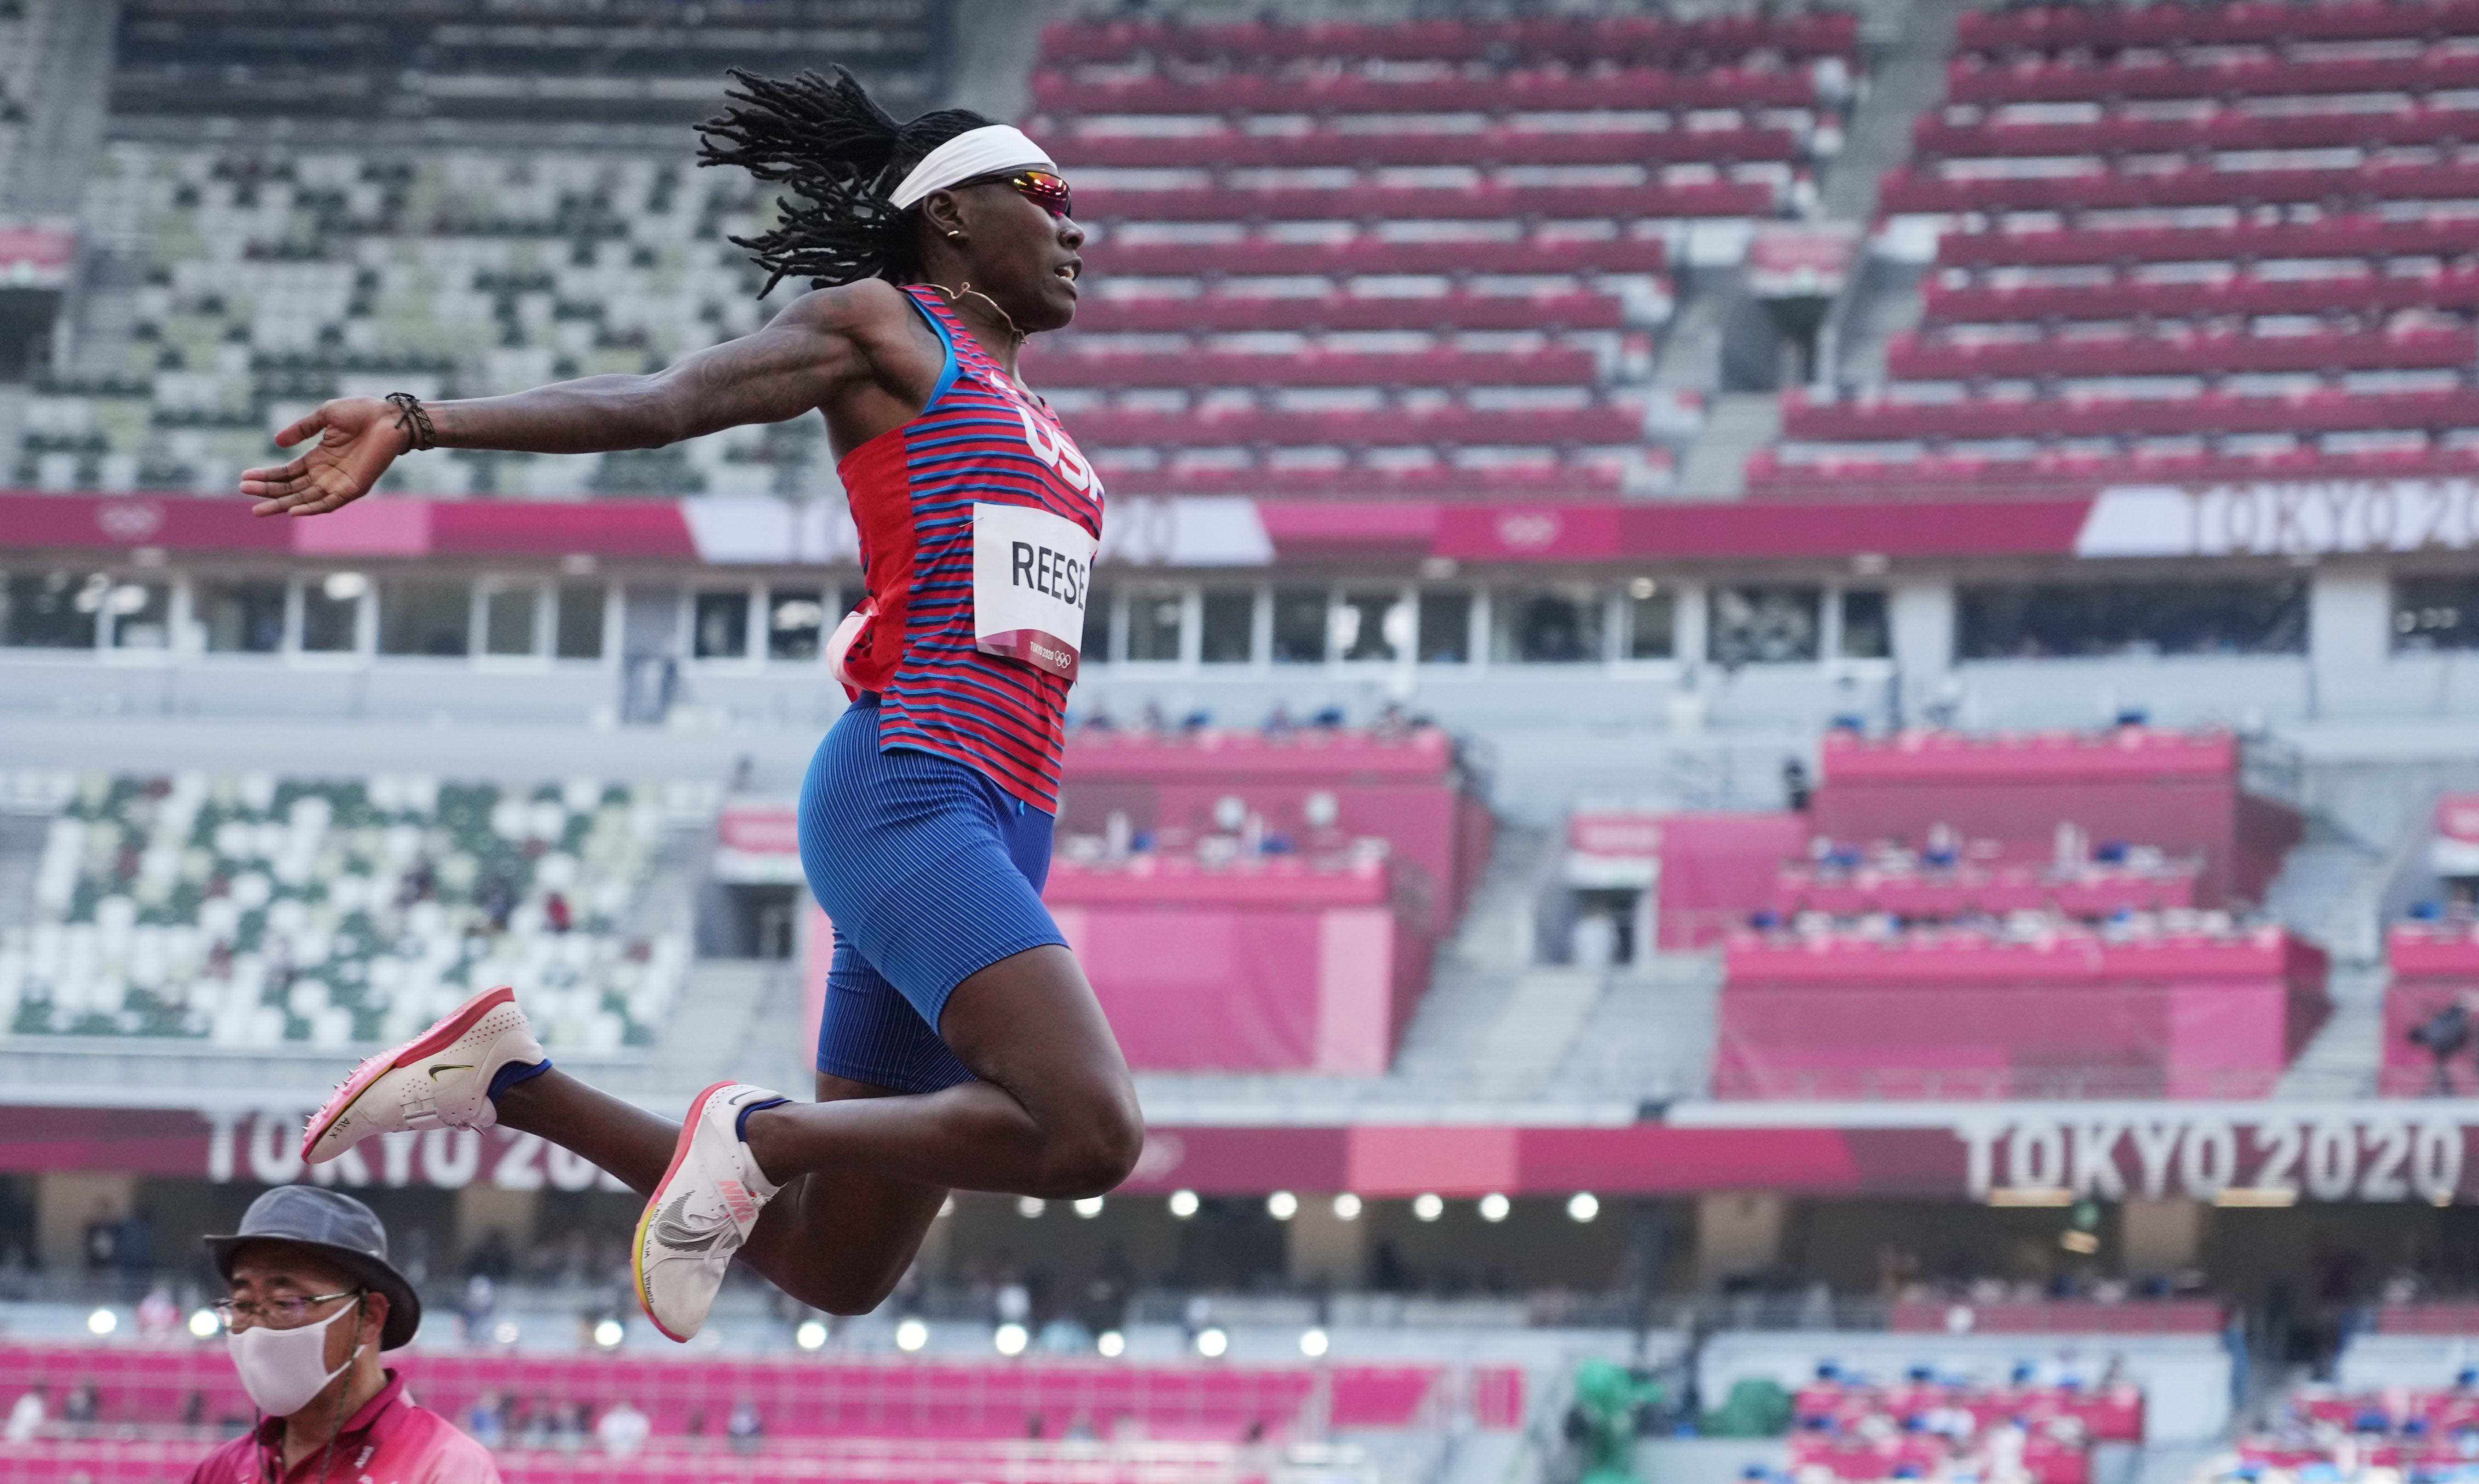 Tokyo Olympics live updates: Brittney Reese earns silver in women s long jump, US beach volleyball duo advances